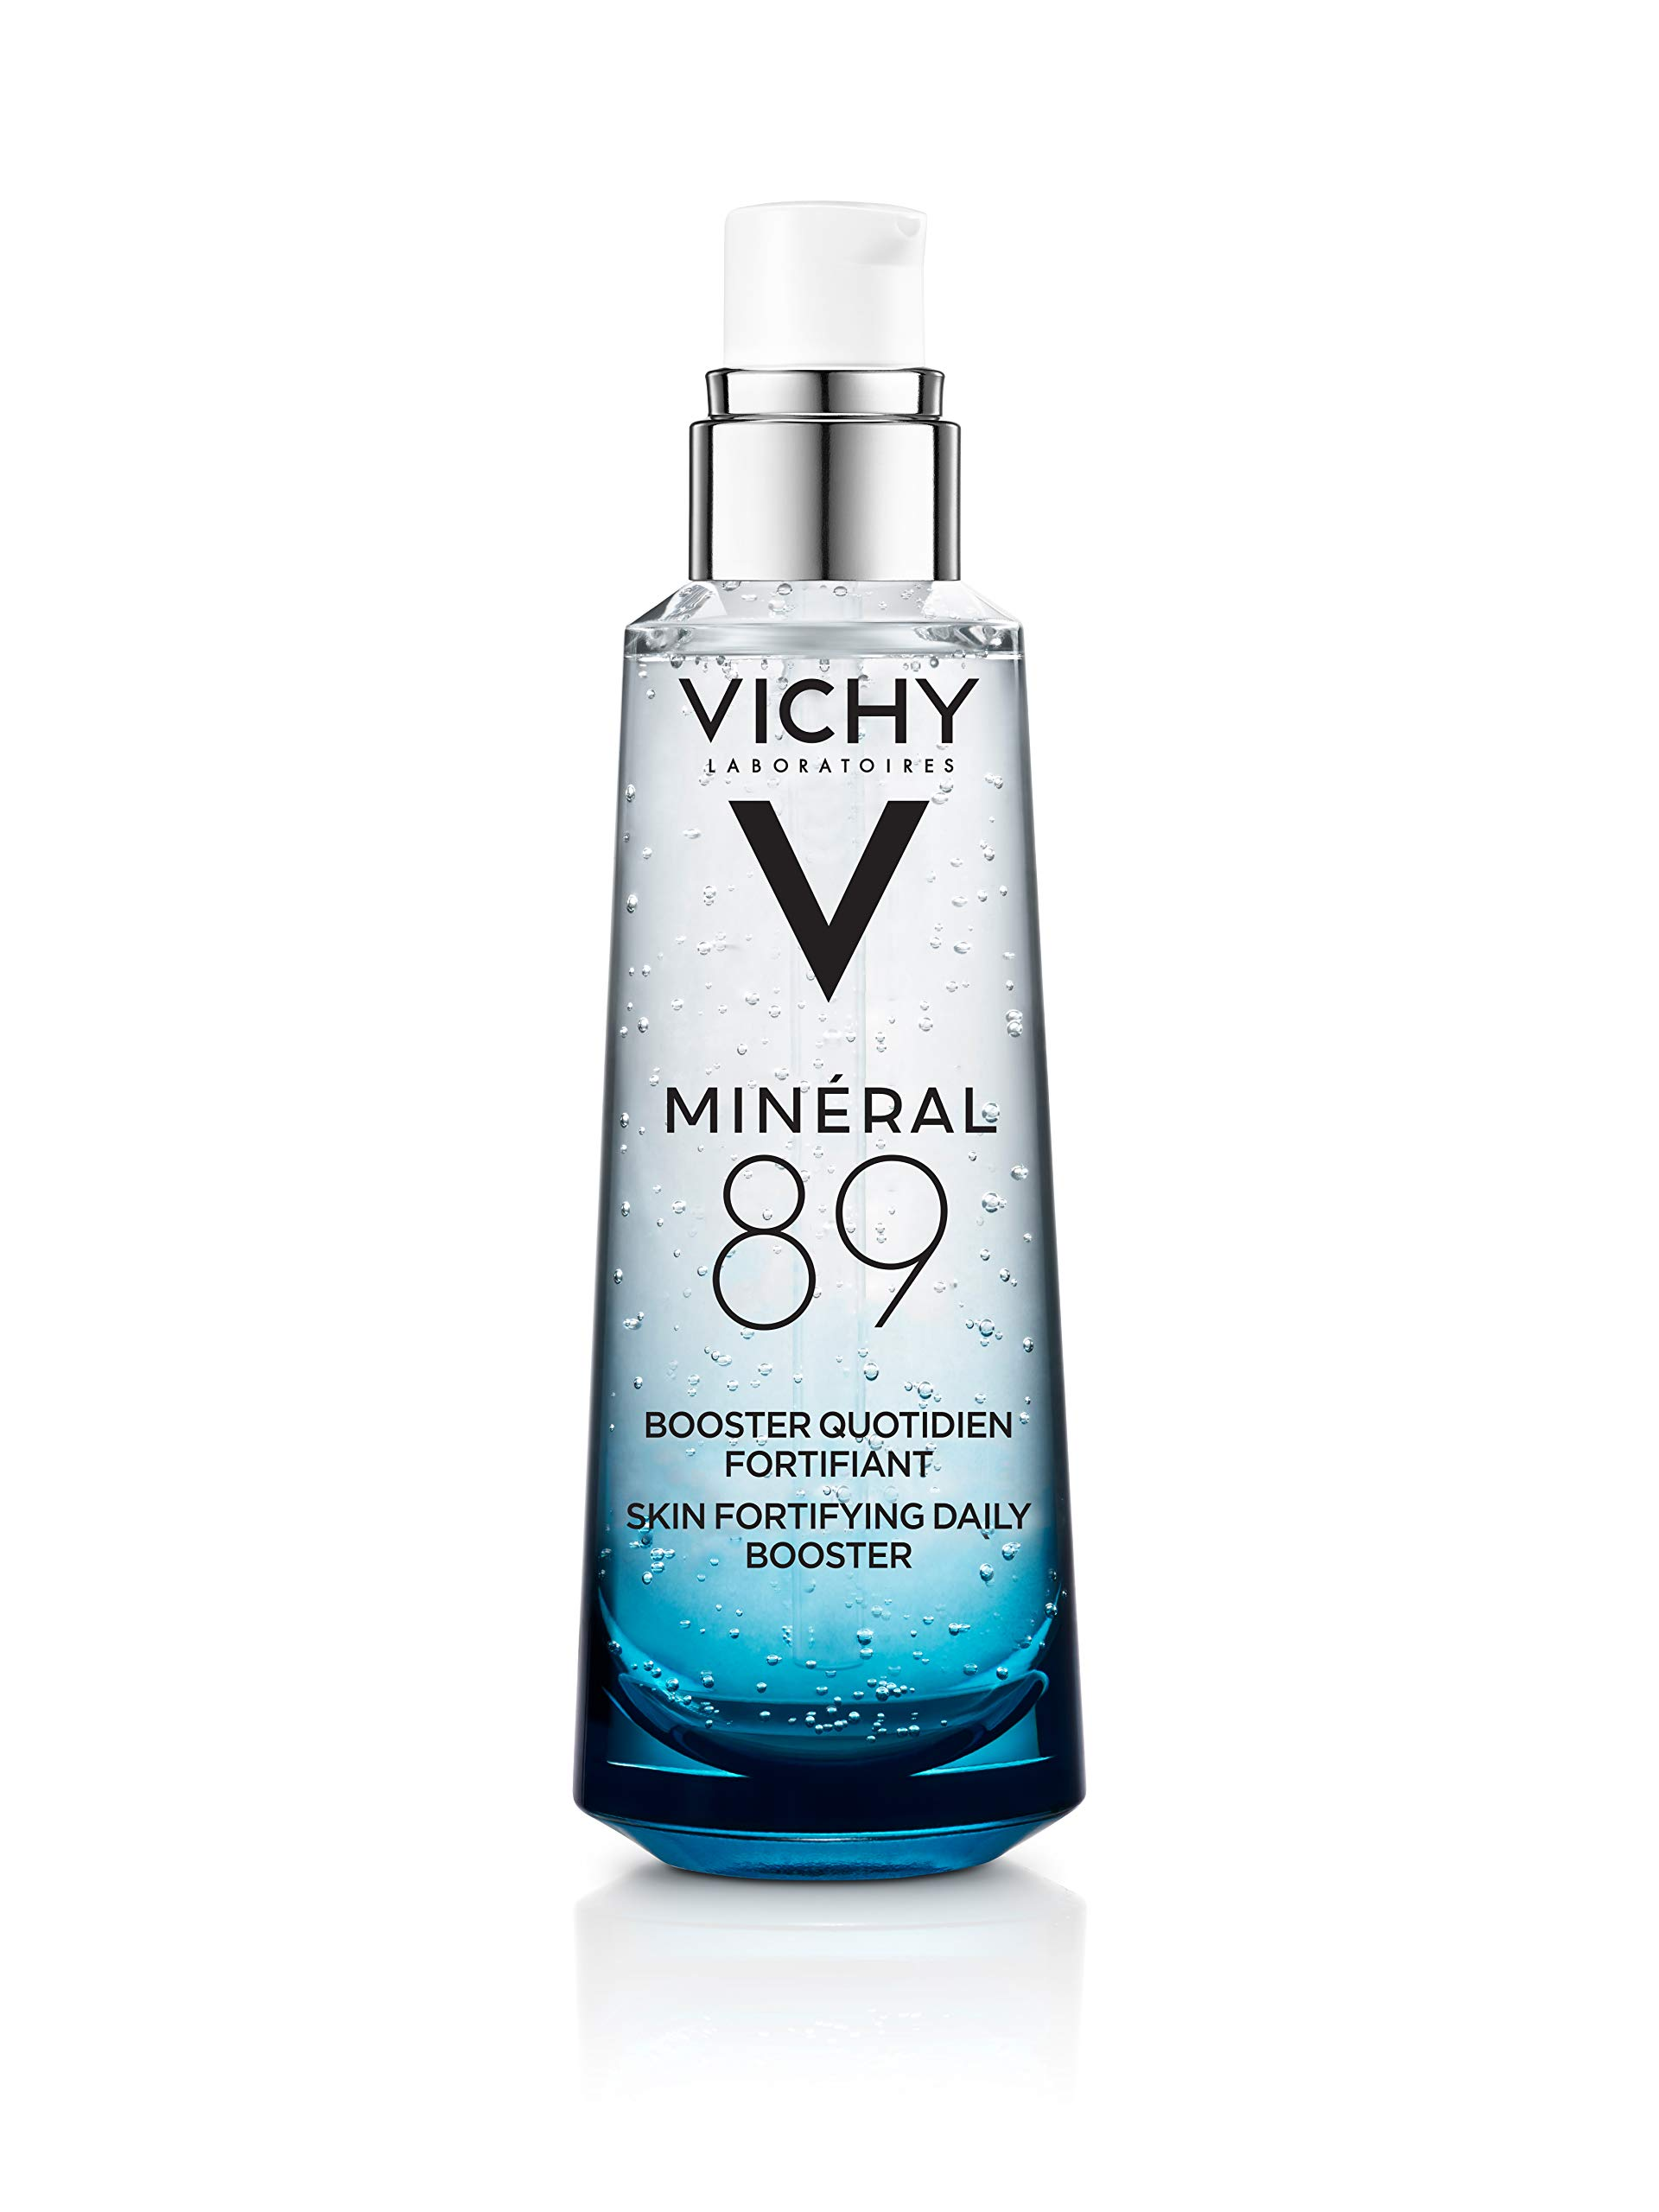 Vichy Mineral 89 Hydrating Hyaluronic Acid Serum and Daily Skin Booster, For Stronger, Healthier Looking Skin, 2.54 Fl. Oz. by Vichy (Image #1)